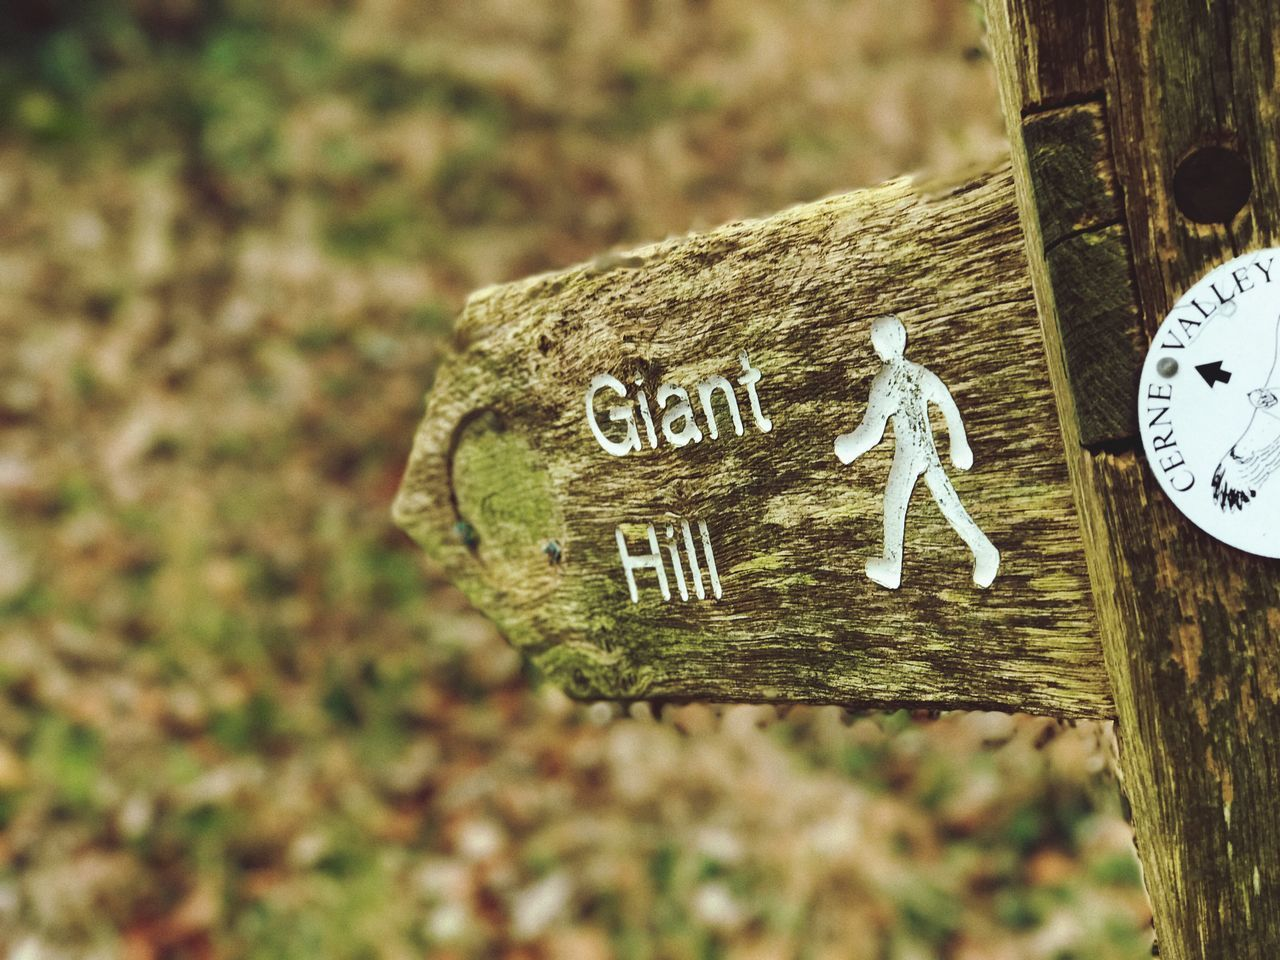 Cerne Giant Outdoors Signs nature Communication Text Focus On Foreground No People Close-up Day